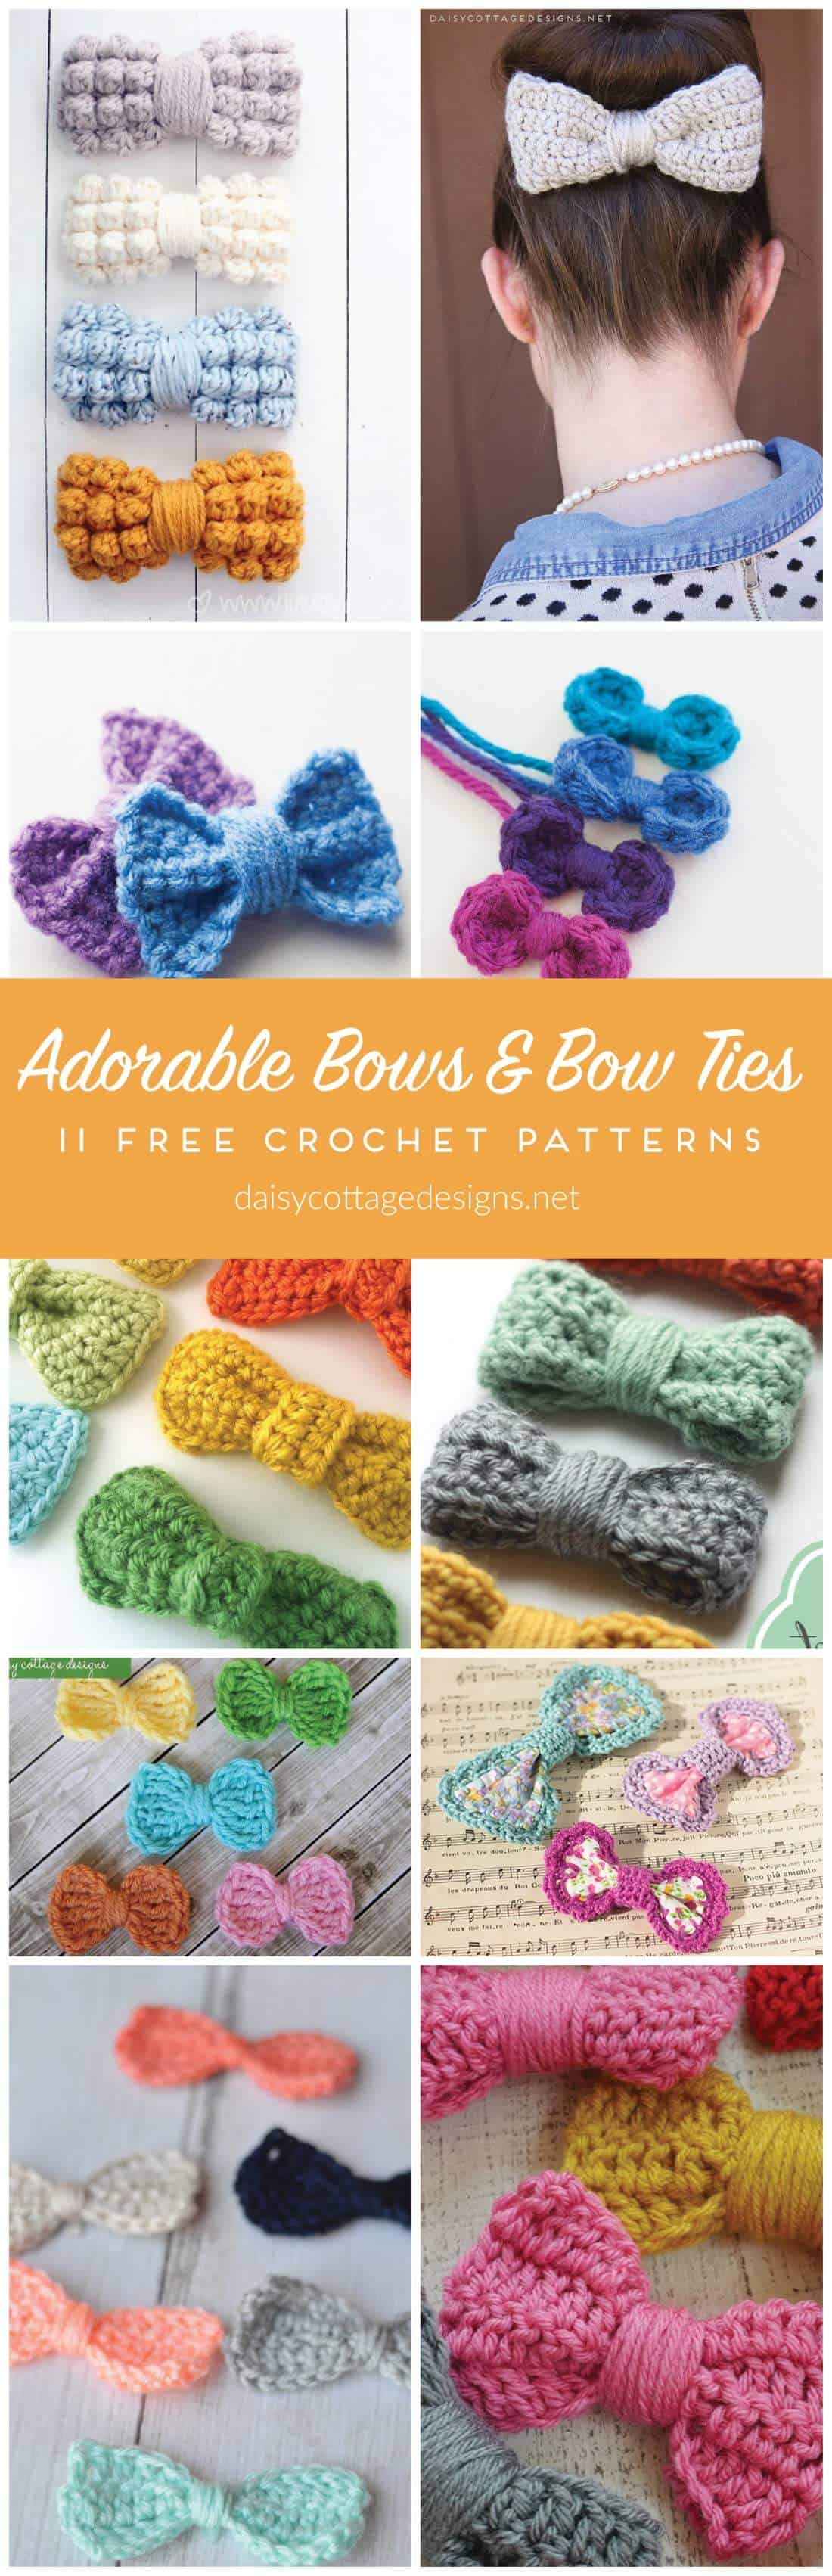 Free Crochet Pattern | Bow Tie Pattern | Crochet Bow Pattern | Use this collection of crochet patterns to make adorable embellishments for any project. From crochet hats to crochet bags, these bow patterns will make your projects look even cuter!